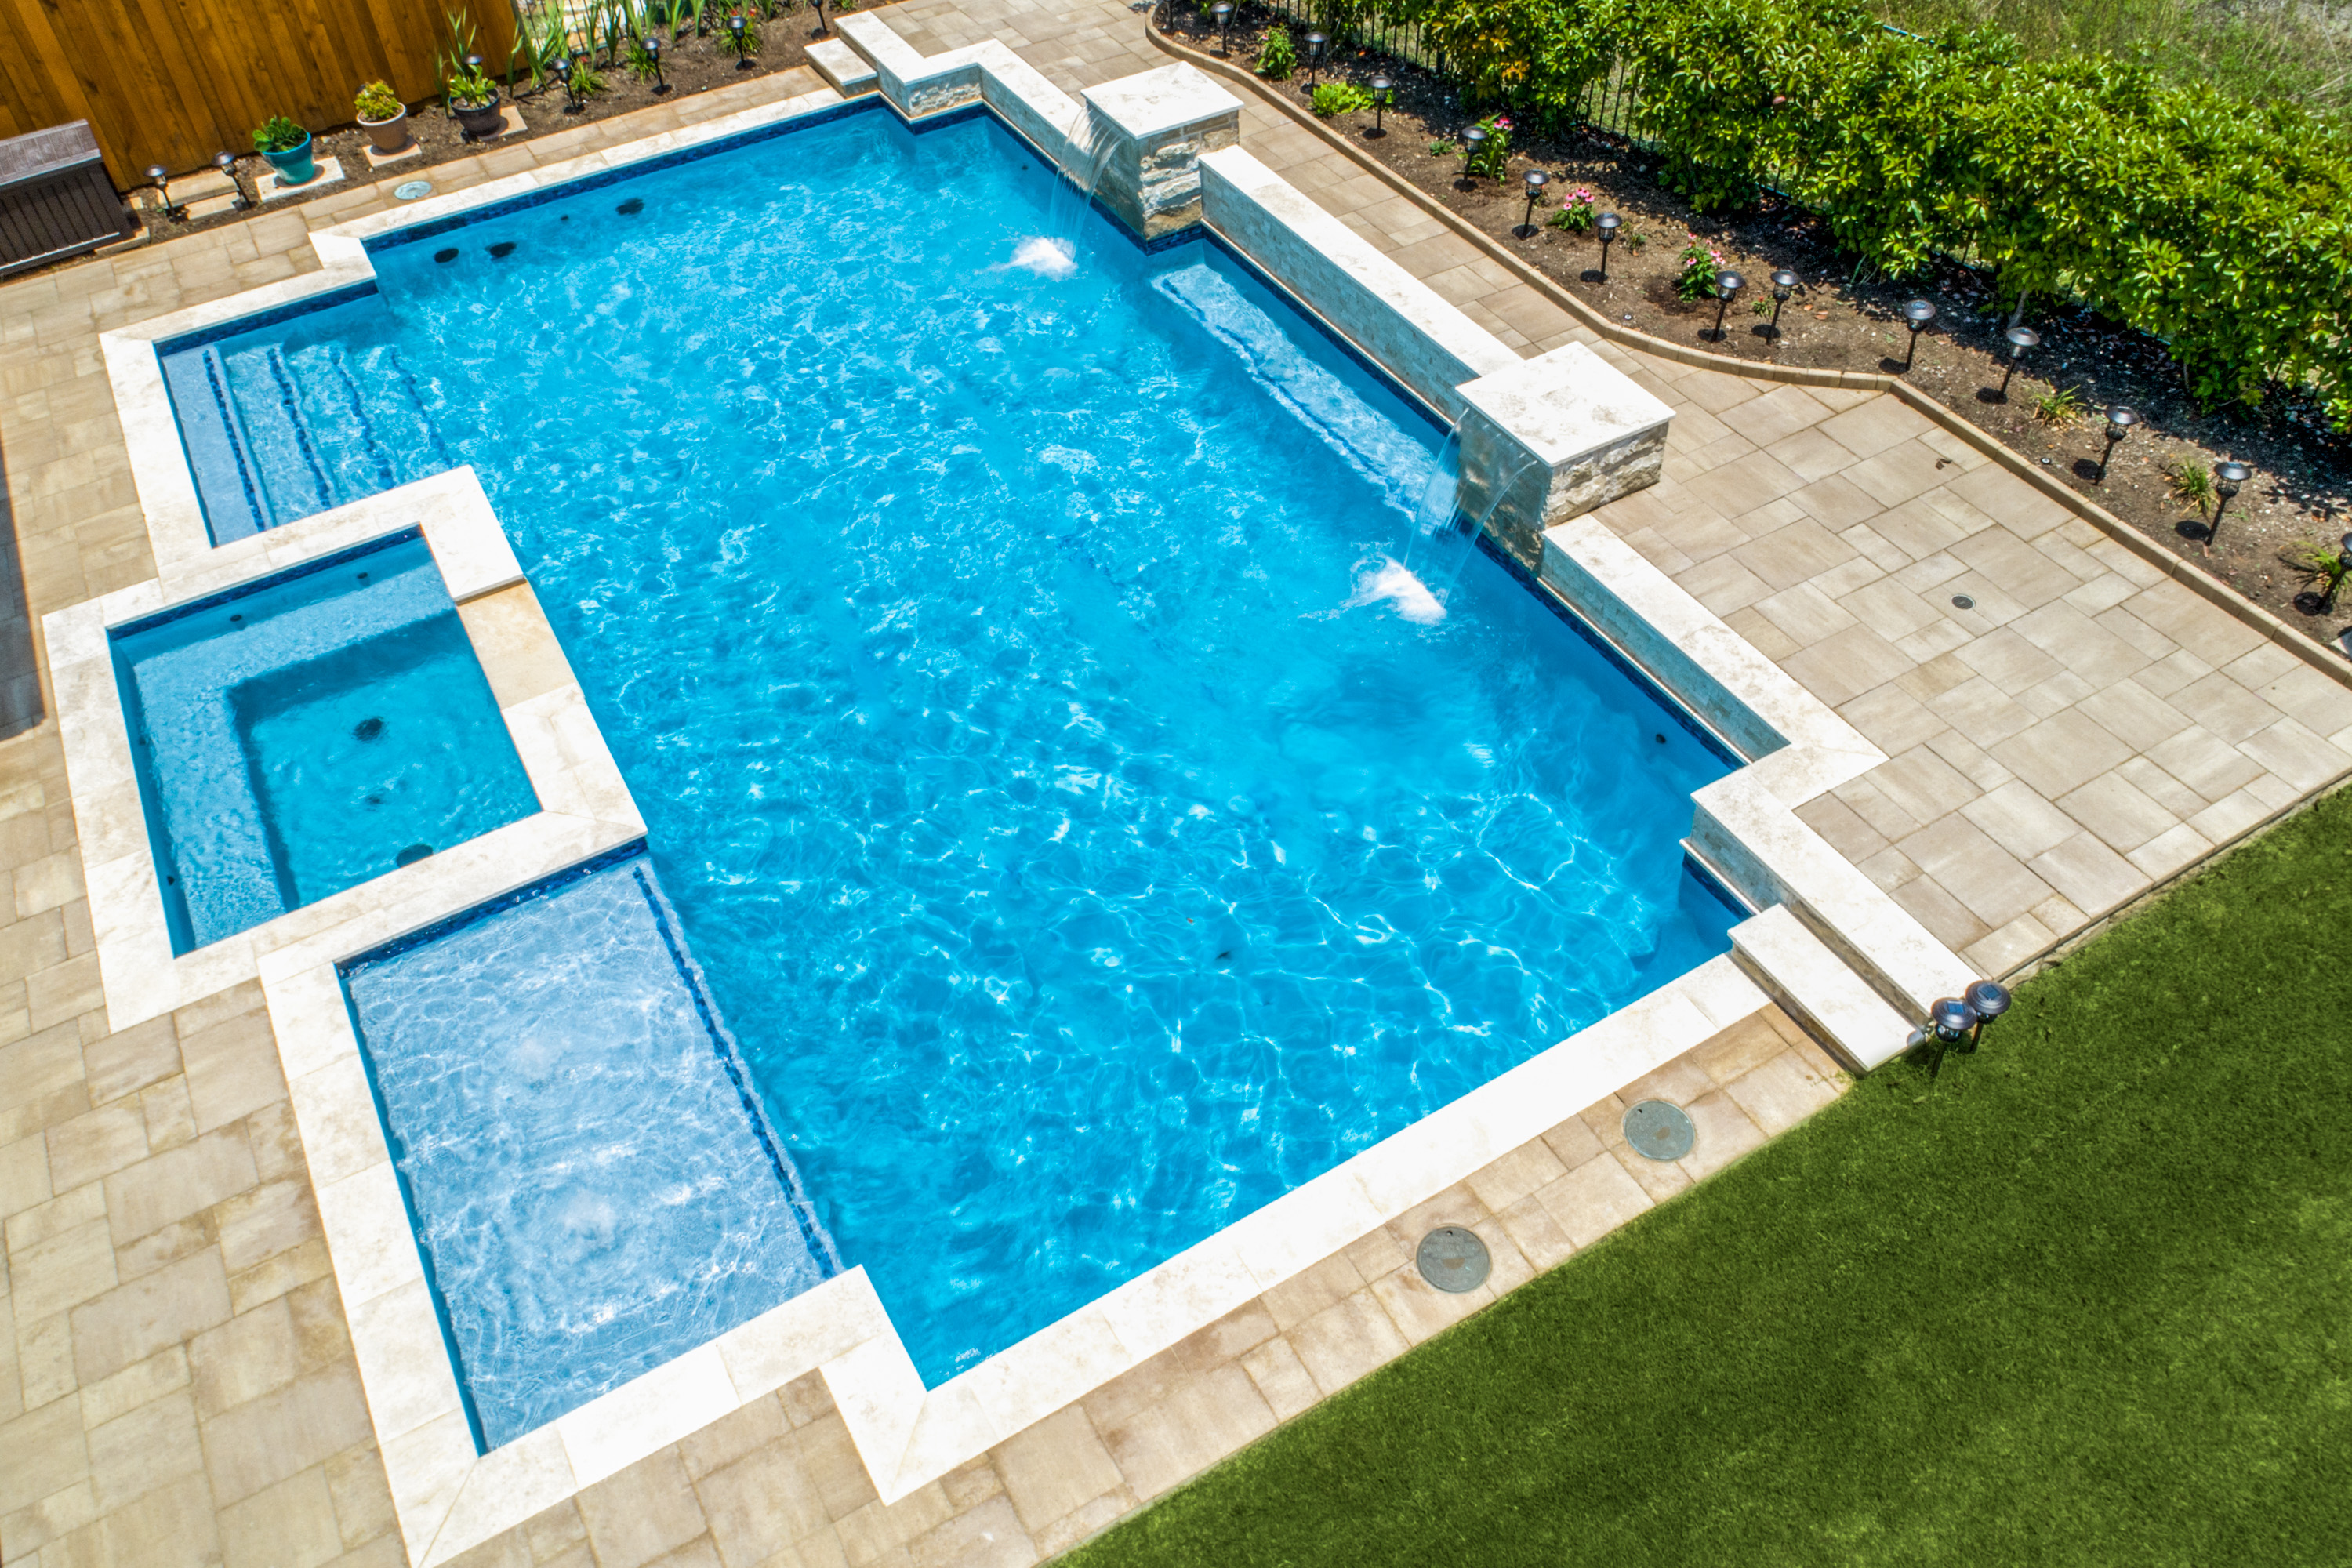 Gold_Medal_Pools-Residential_Pool